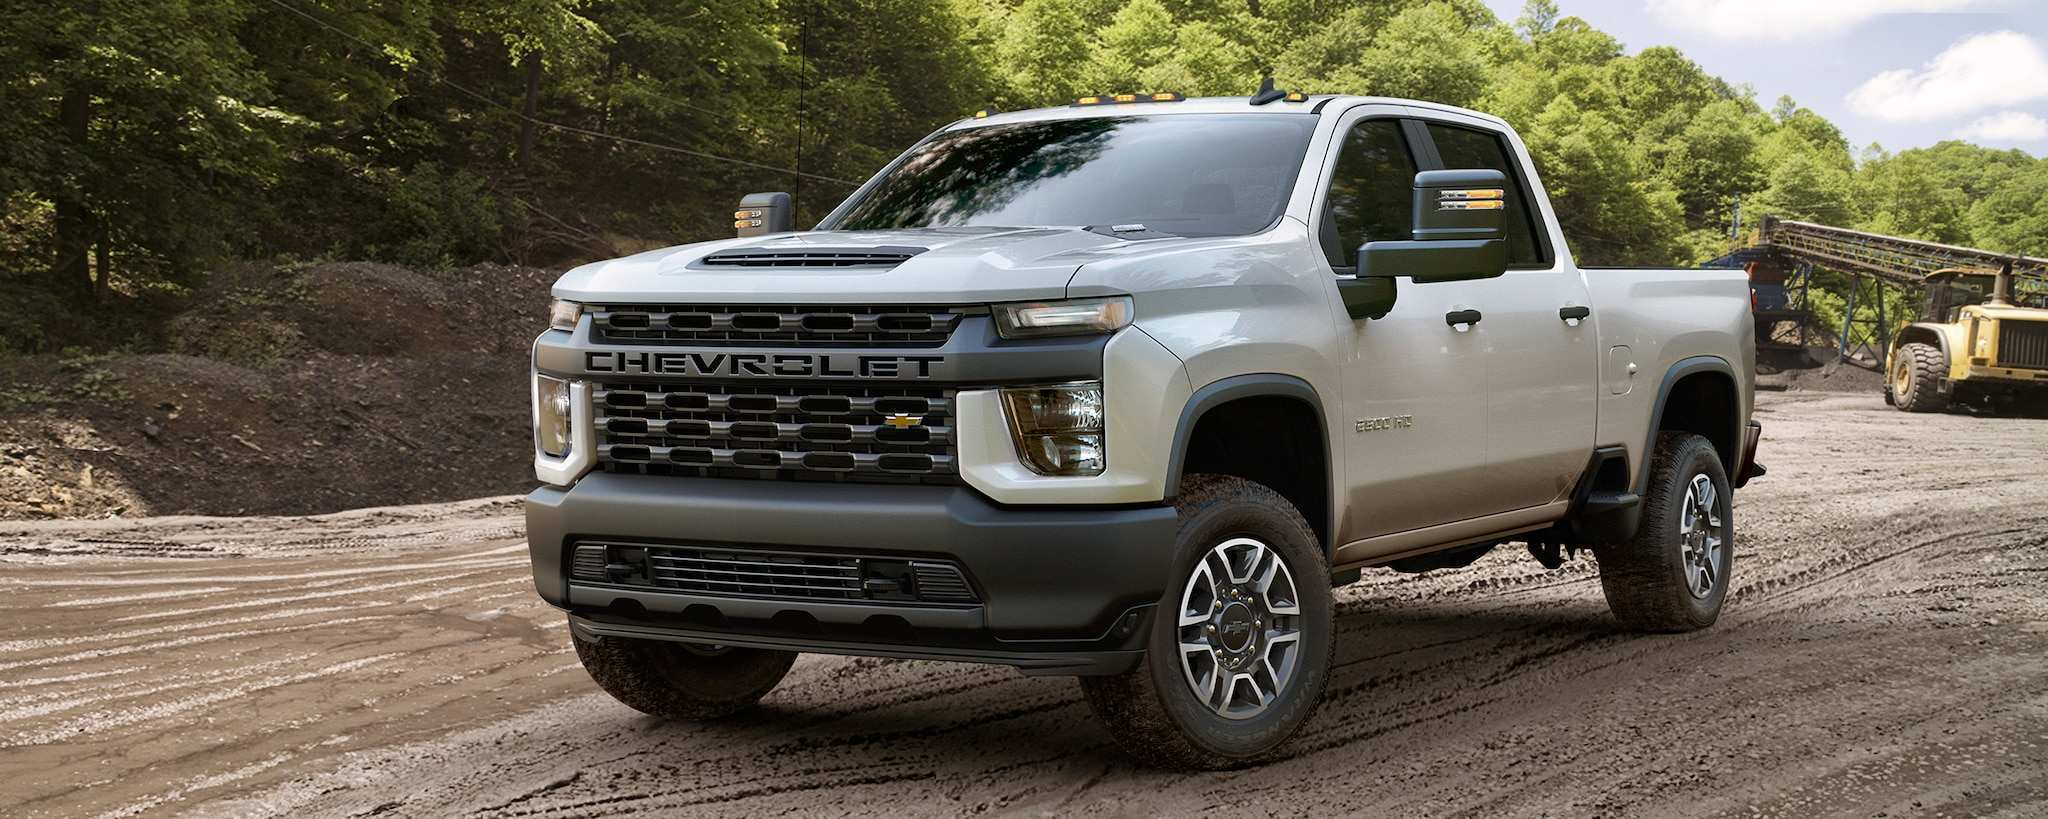 37 A 2020 Chevrolet 2500 Ltz Release Date And Concept